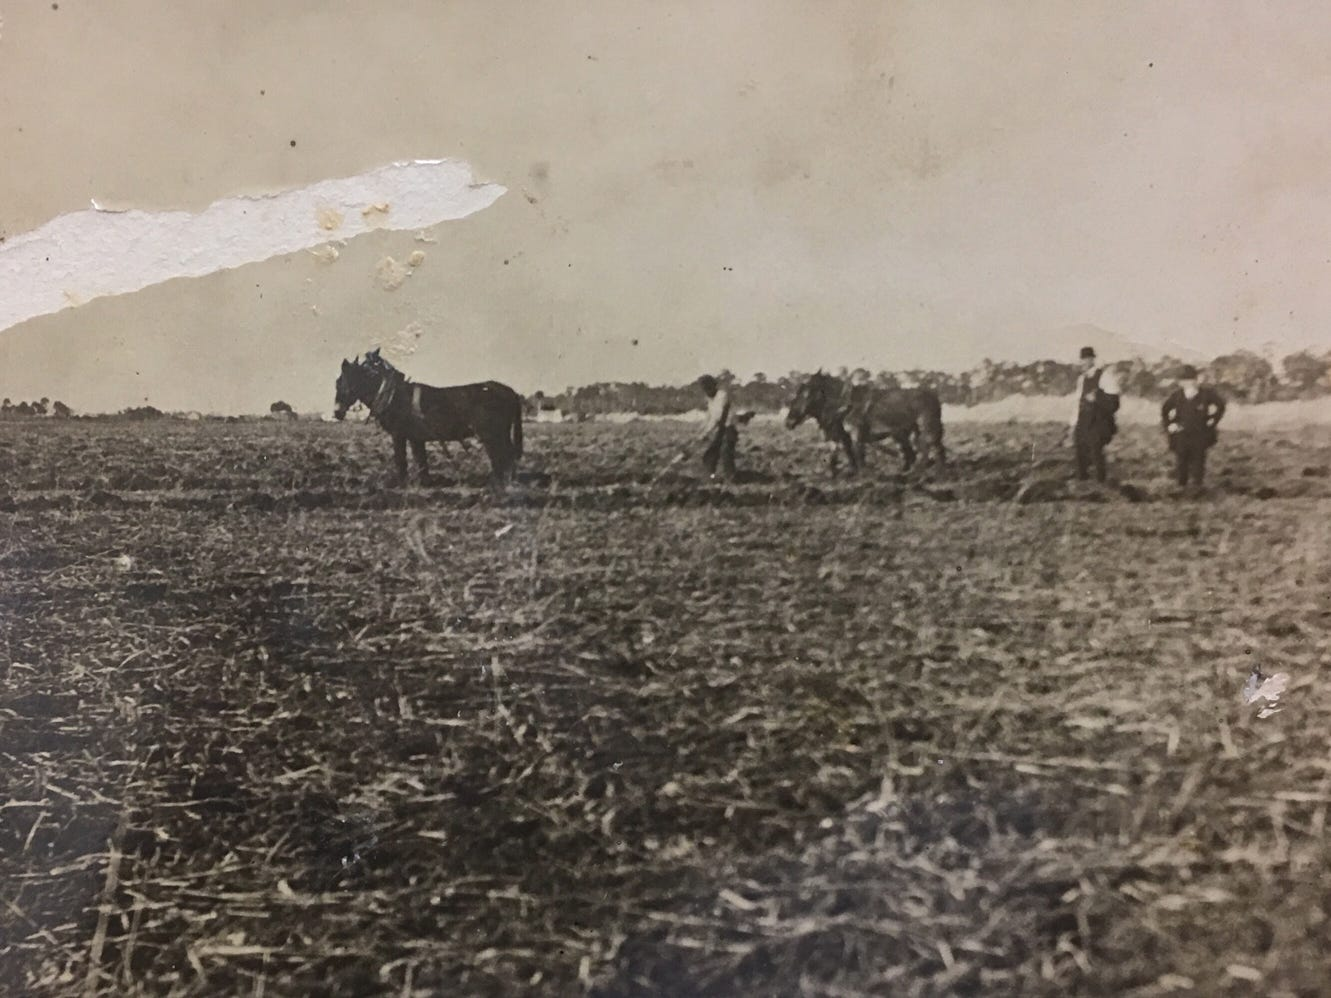 Breaking up the new muck in the prairie lands for the winter cabbage crop in Indian River Farms area, pre-1920.